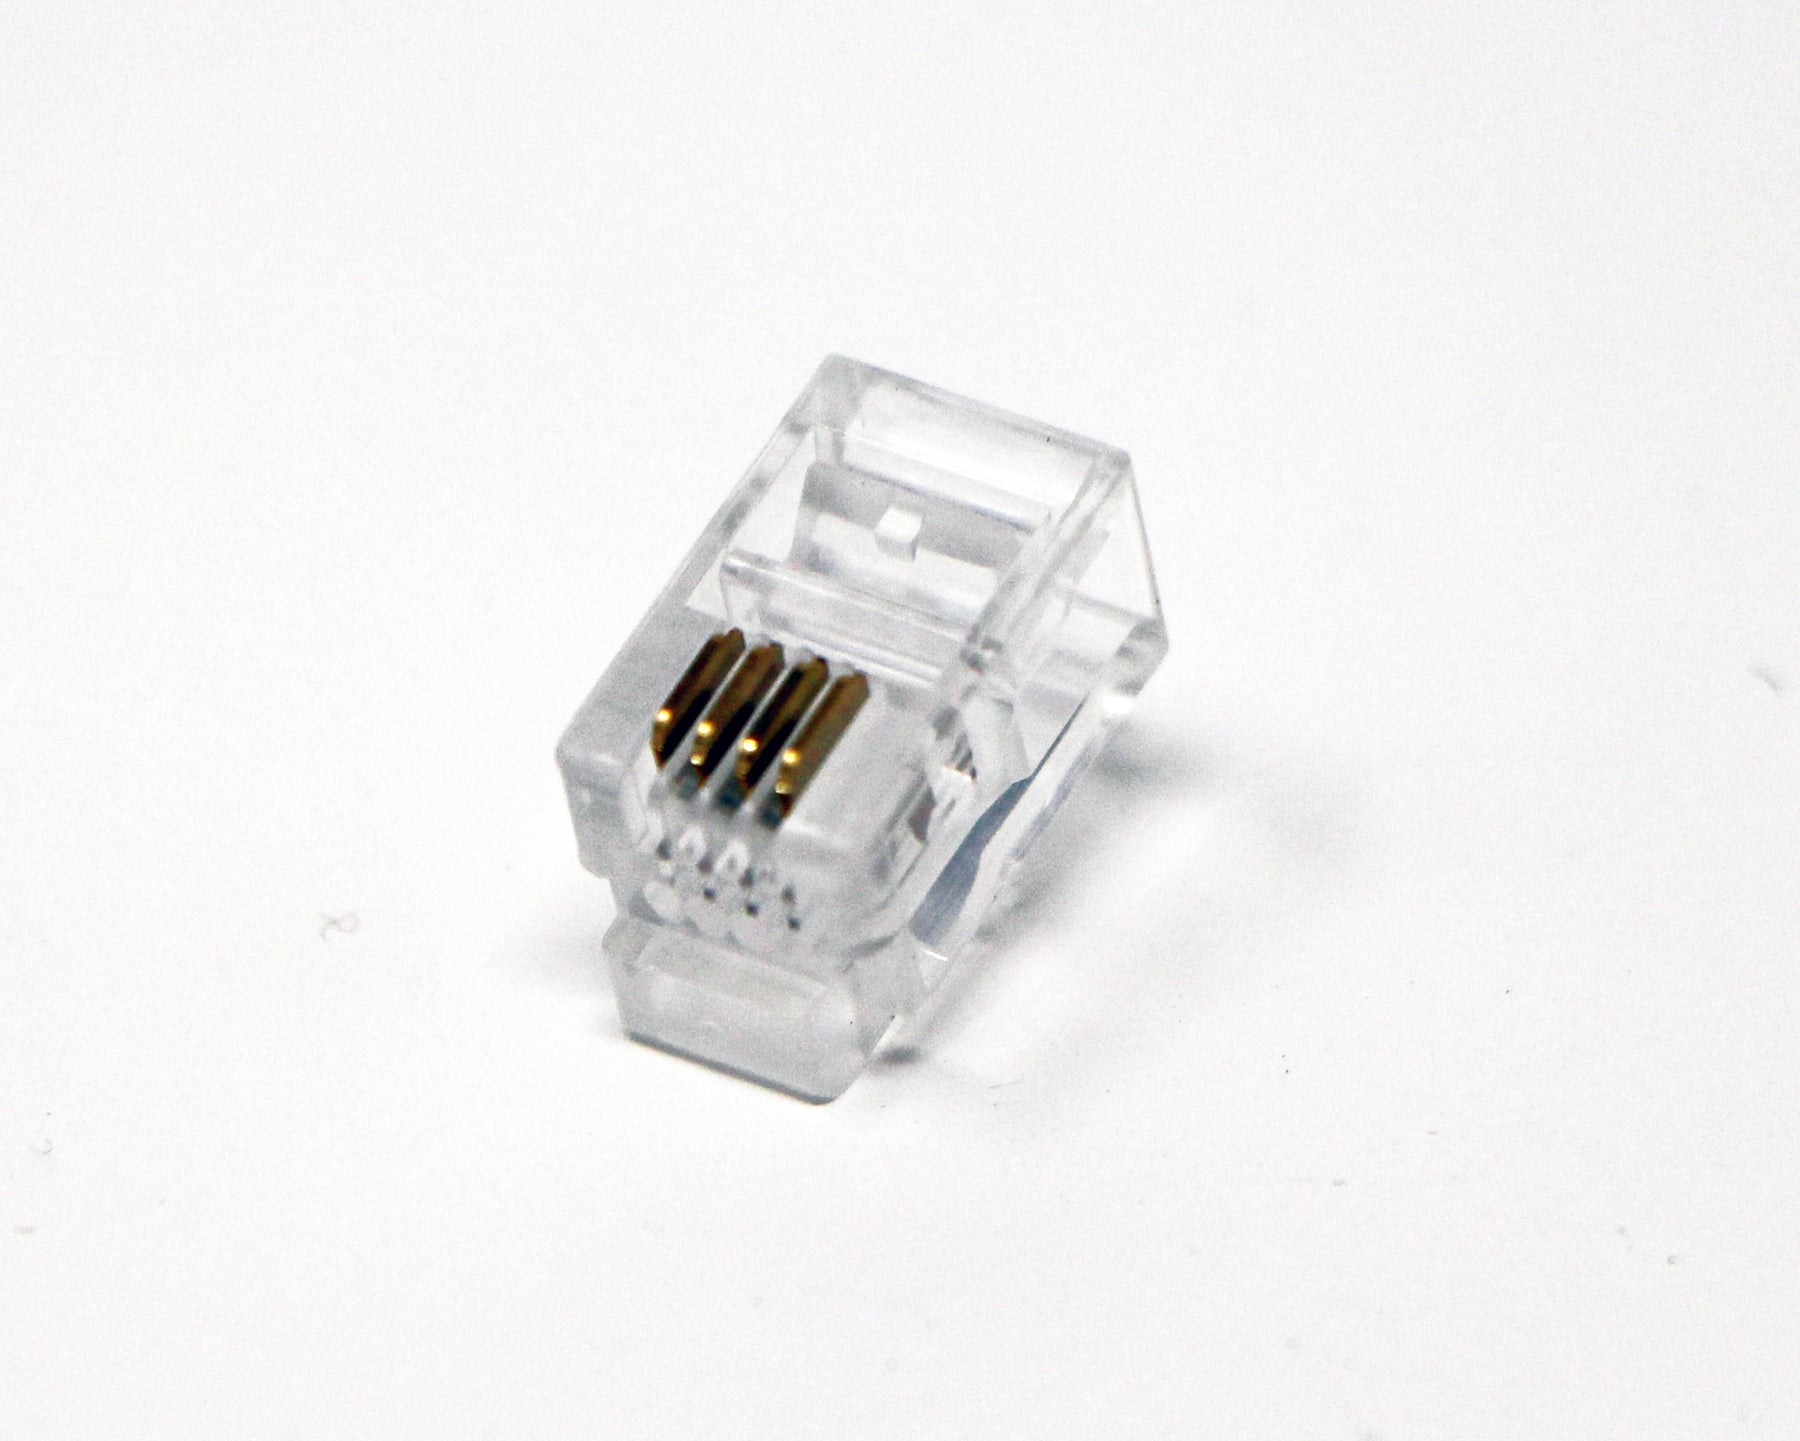 RJ9 Modular Headset Connector (100 Pack Per Bag) 4P4C Phone Connectors - RJ9/RJ10/RJ22 Jack Crimp